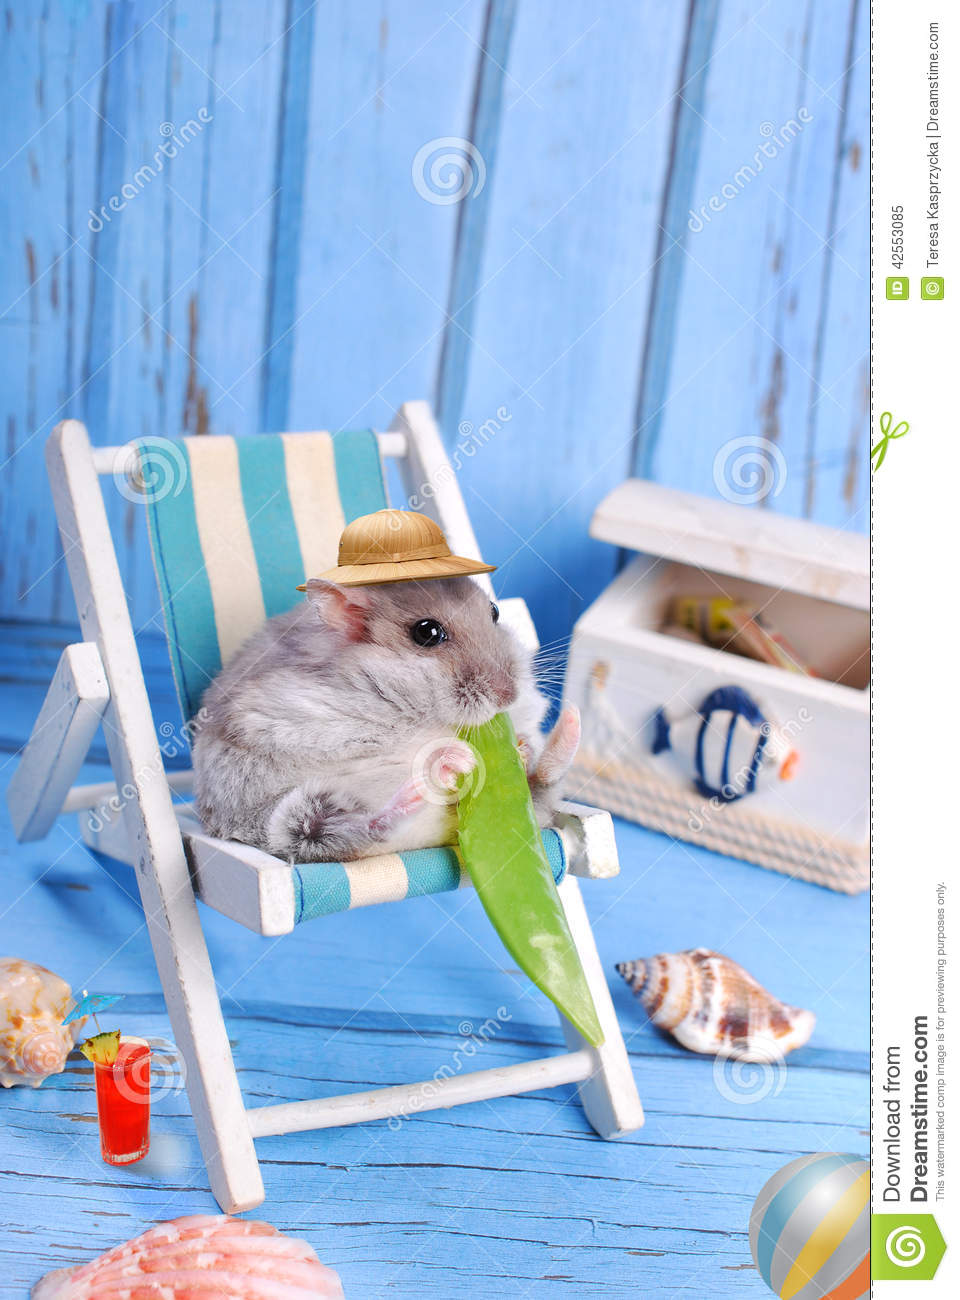 Stock Photo Man Laptop  puter Relaxing Beach Sitting Deck Chair Image42632590 additionally Above Ground Pool Deck Framing in addition Stock Photo Man Lying Beach Chair Ynder Umbrella Image13557460 further Black Exposed Ceiling Kitchen Industrial With Granite Countertops Open Floor Plan Wall Art besides Easy Bench Plans. on deck chair plans